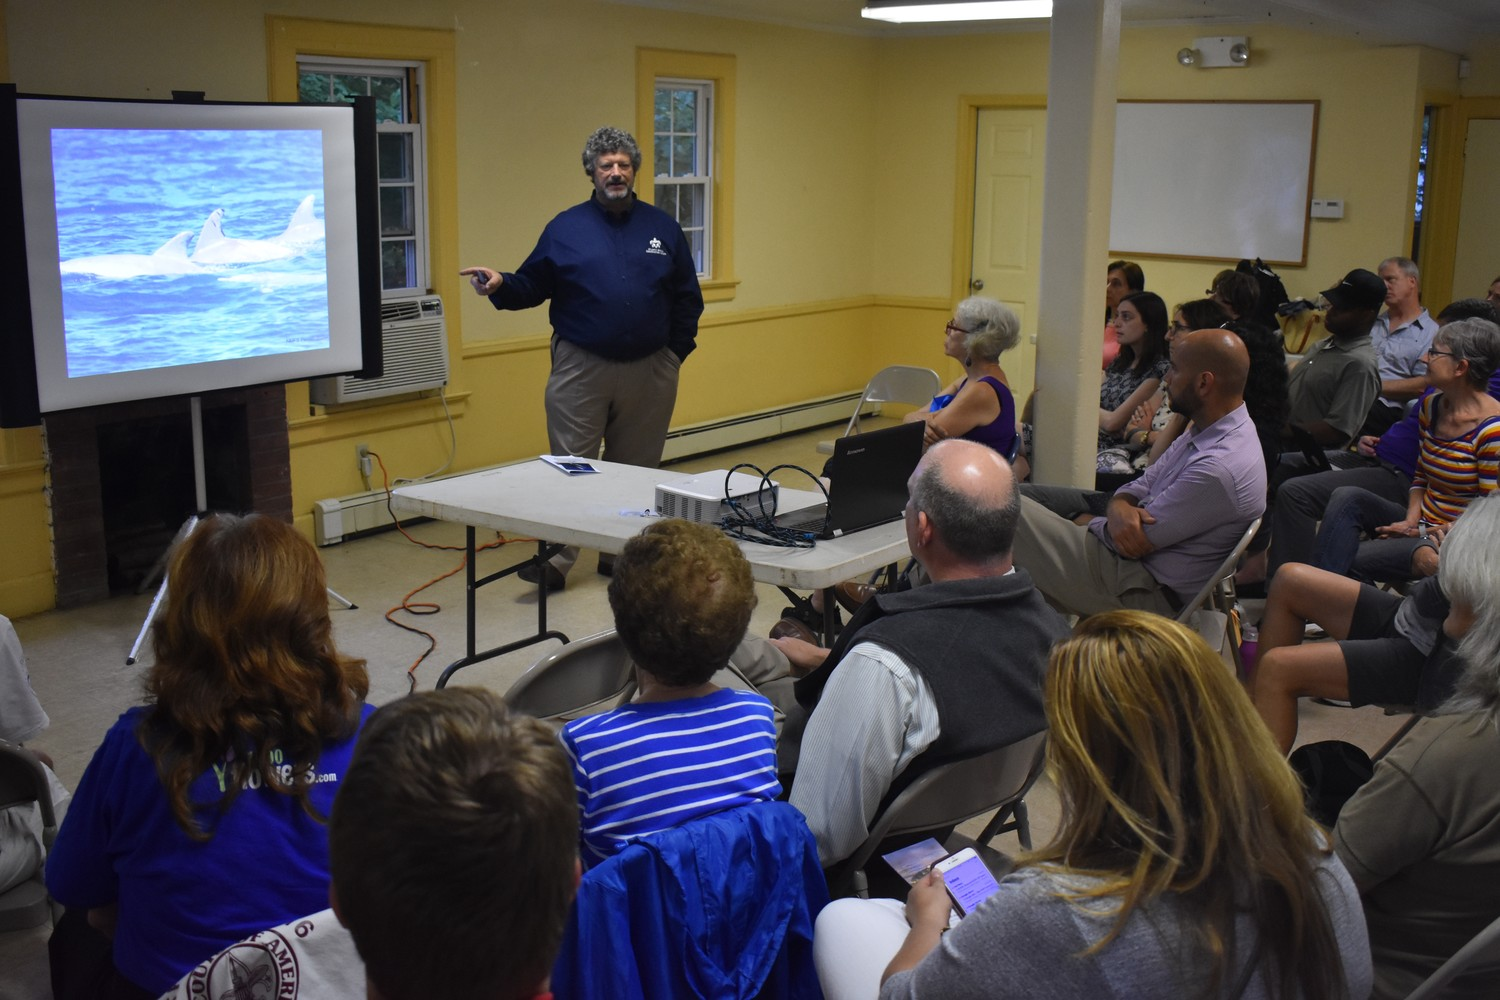 Rob DiGiovanni, a founder and chief scientist for the Atlantic Marine Conservation Society, led a discussion about threats to Long Island's marine life at the Tanglewood Preserve Nature Center on July 30.